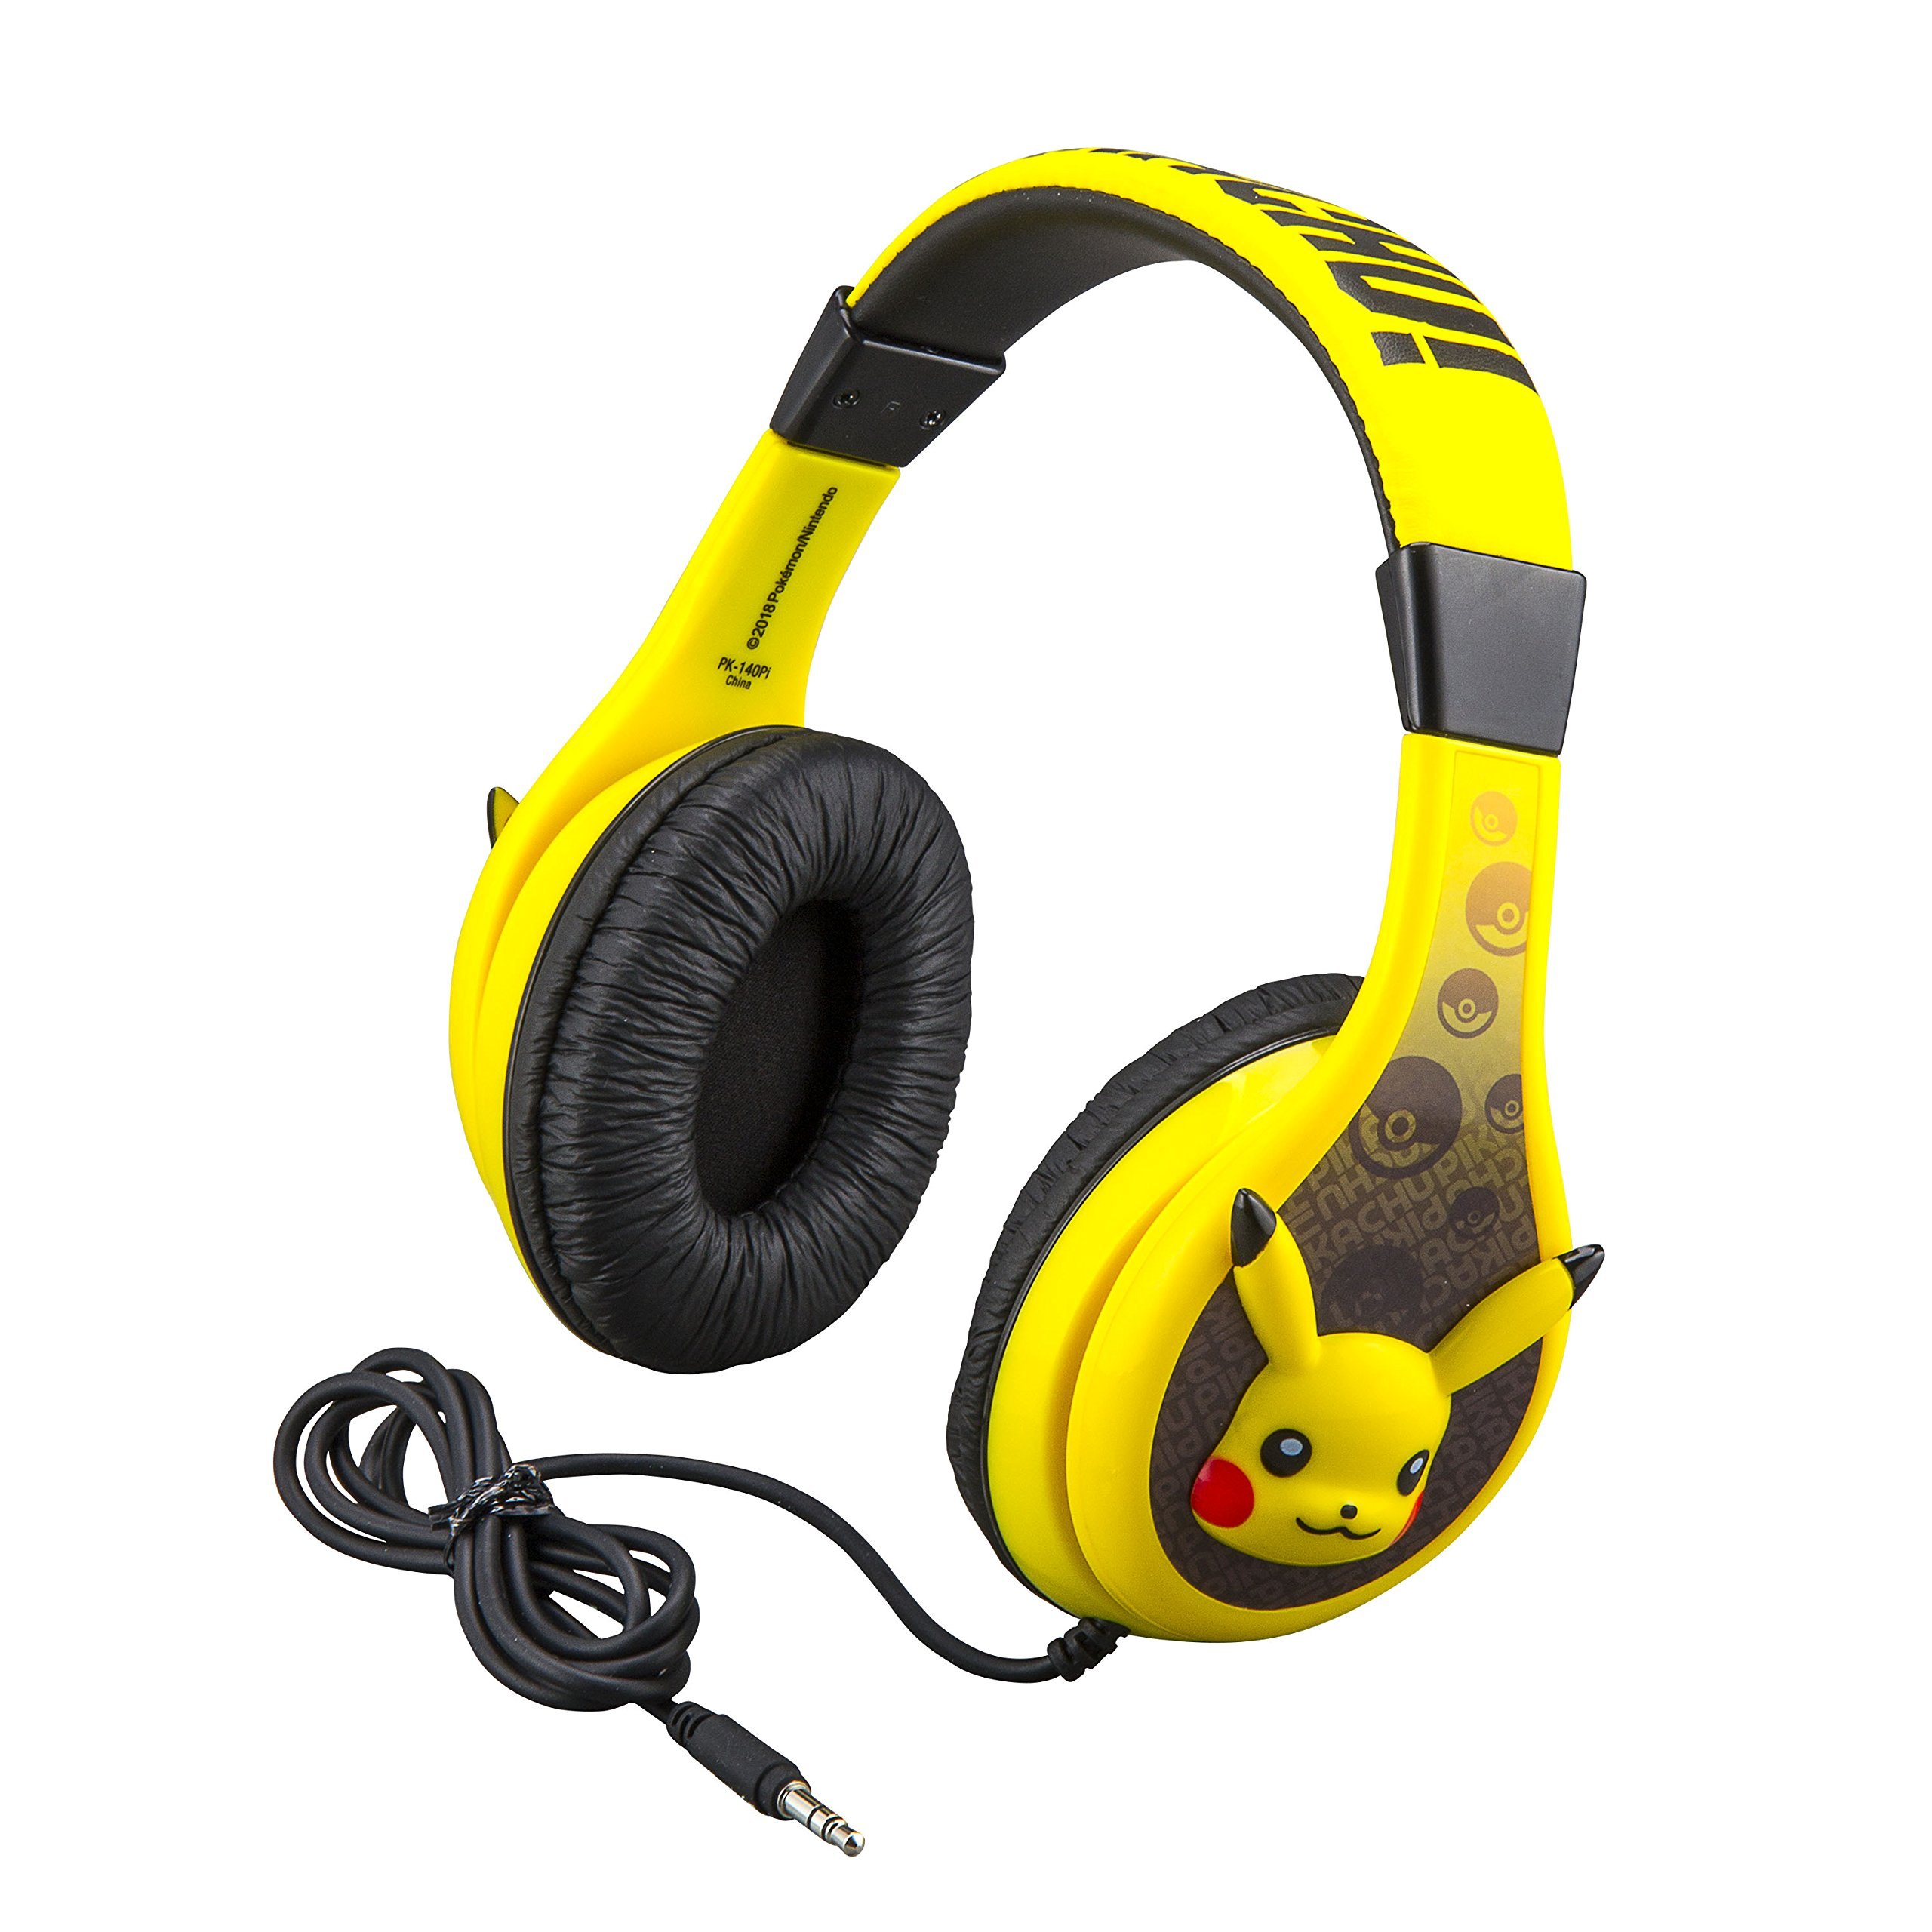 Pokemon Pikachu Headphones for Kids with Built in Volume Limiting Feature for Kid Friendly Safe Listening by eKids